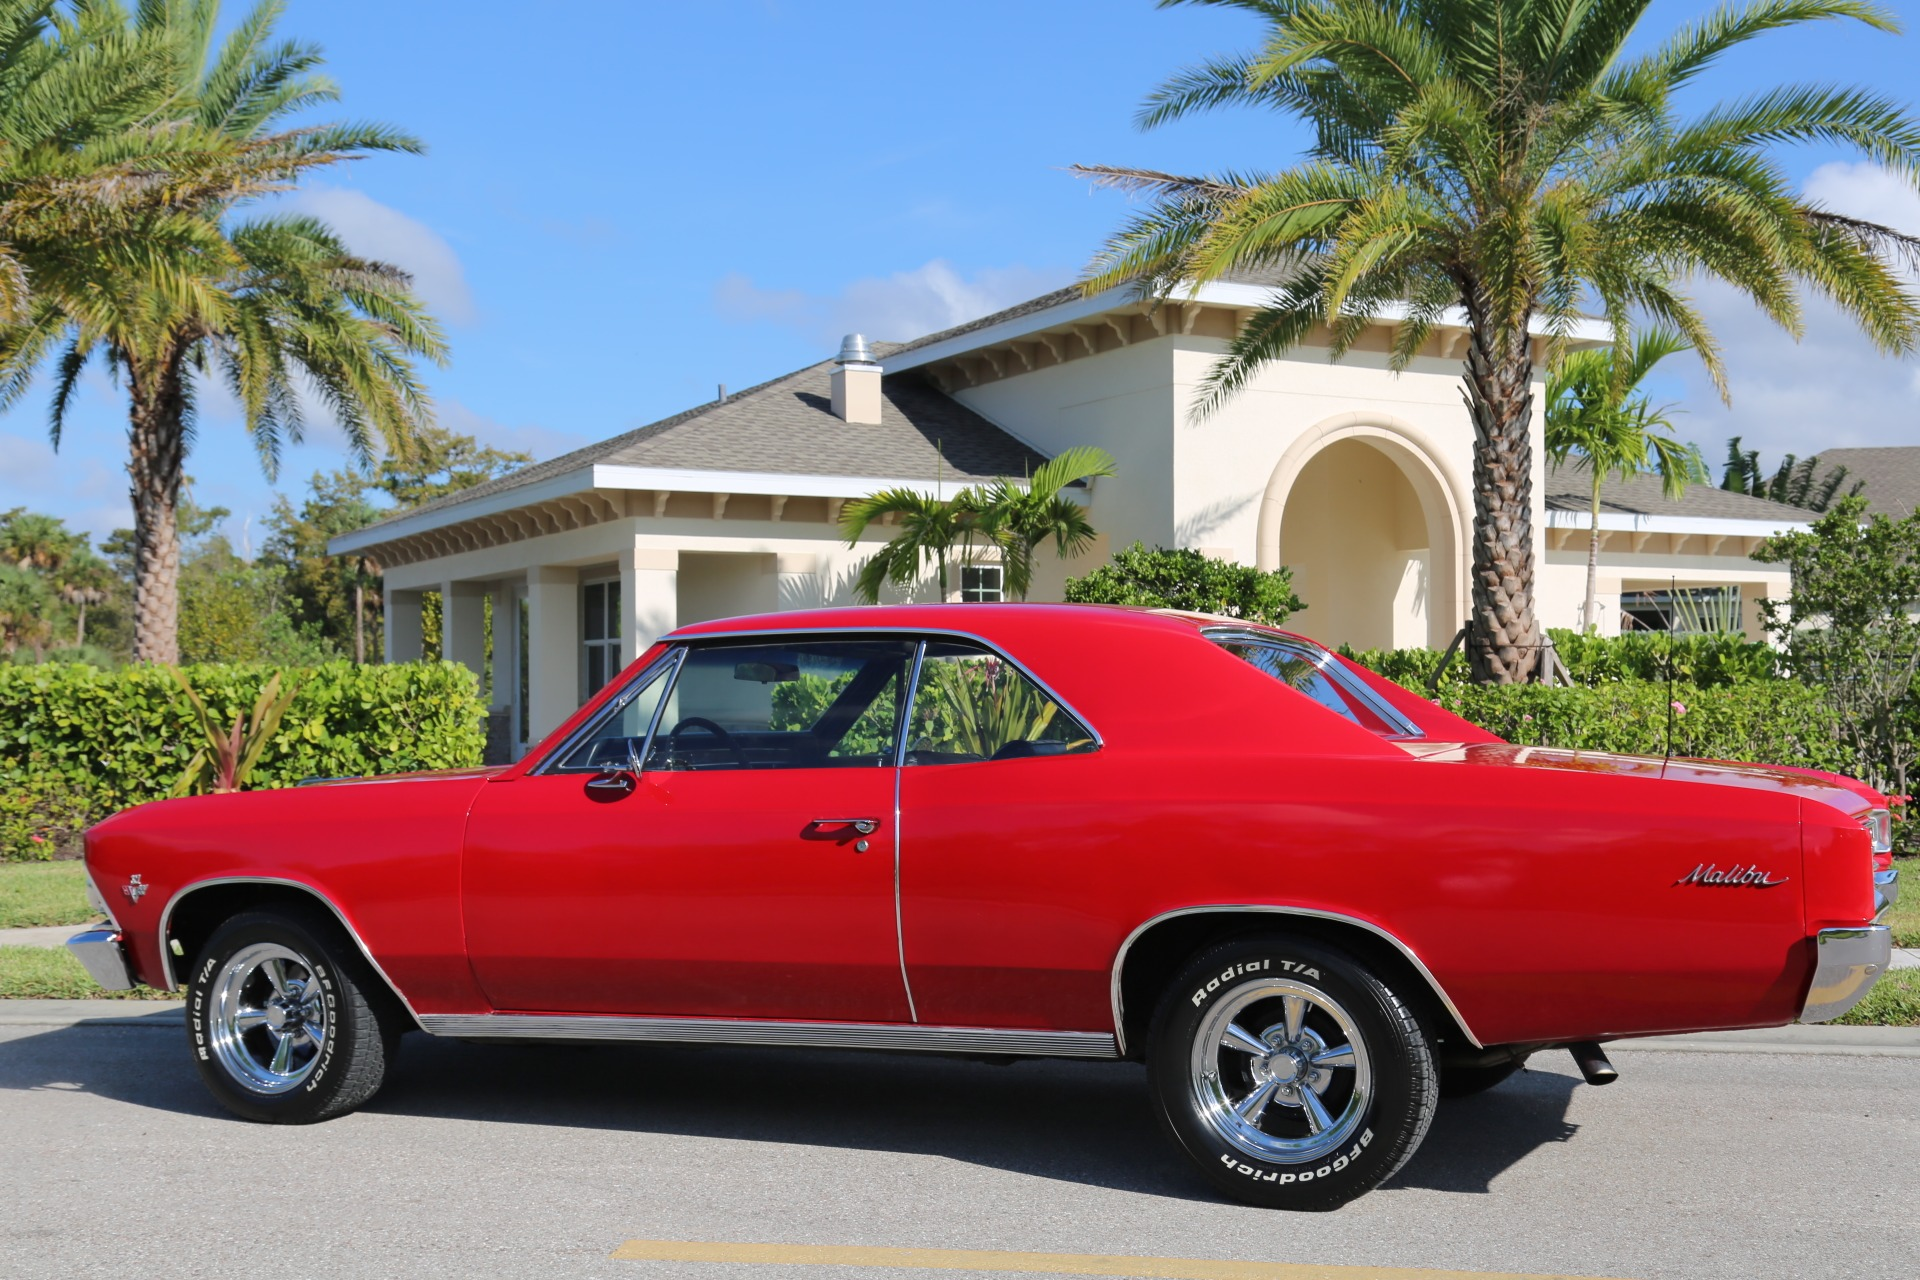 Used 1966 Chevrolet Chevelle Malibu 327 for sale Sold at Muscle Cars for Sale Inc. in Fort Myers FL 33912 7